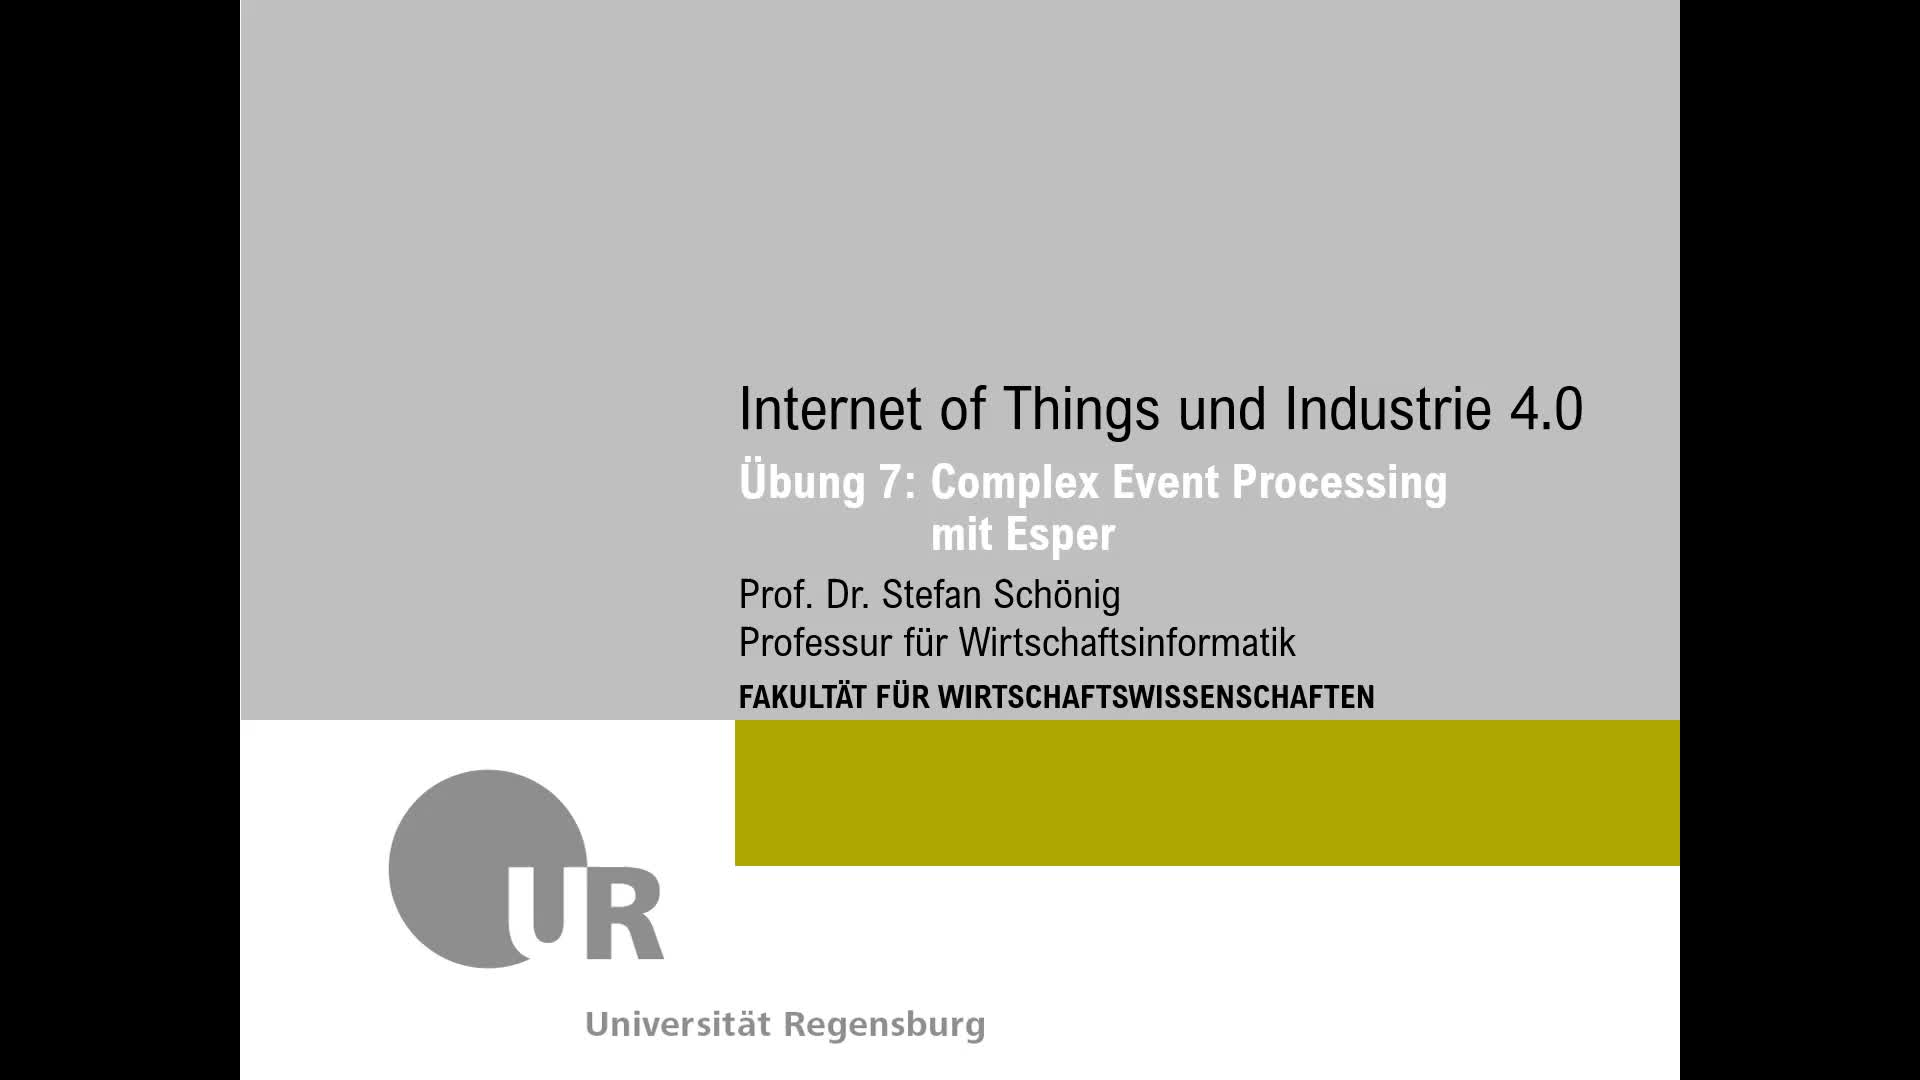 SS 2020 - Internet of Things und Industrie 4.0 - Übung 7 (Complex Event Processing mit Esper)